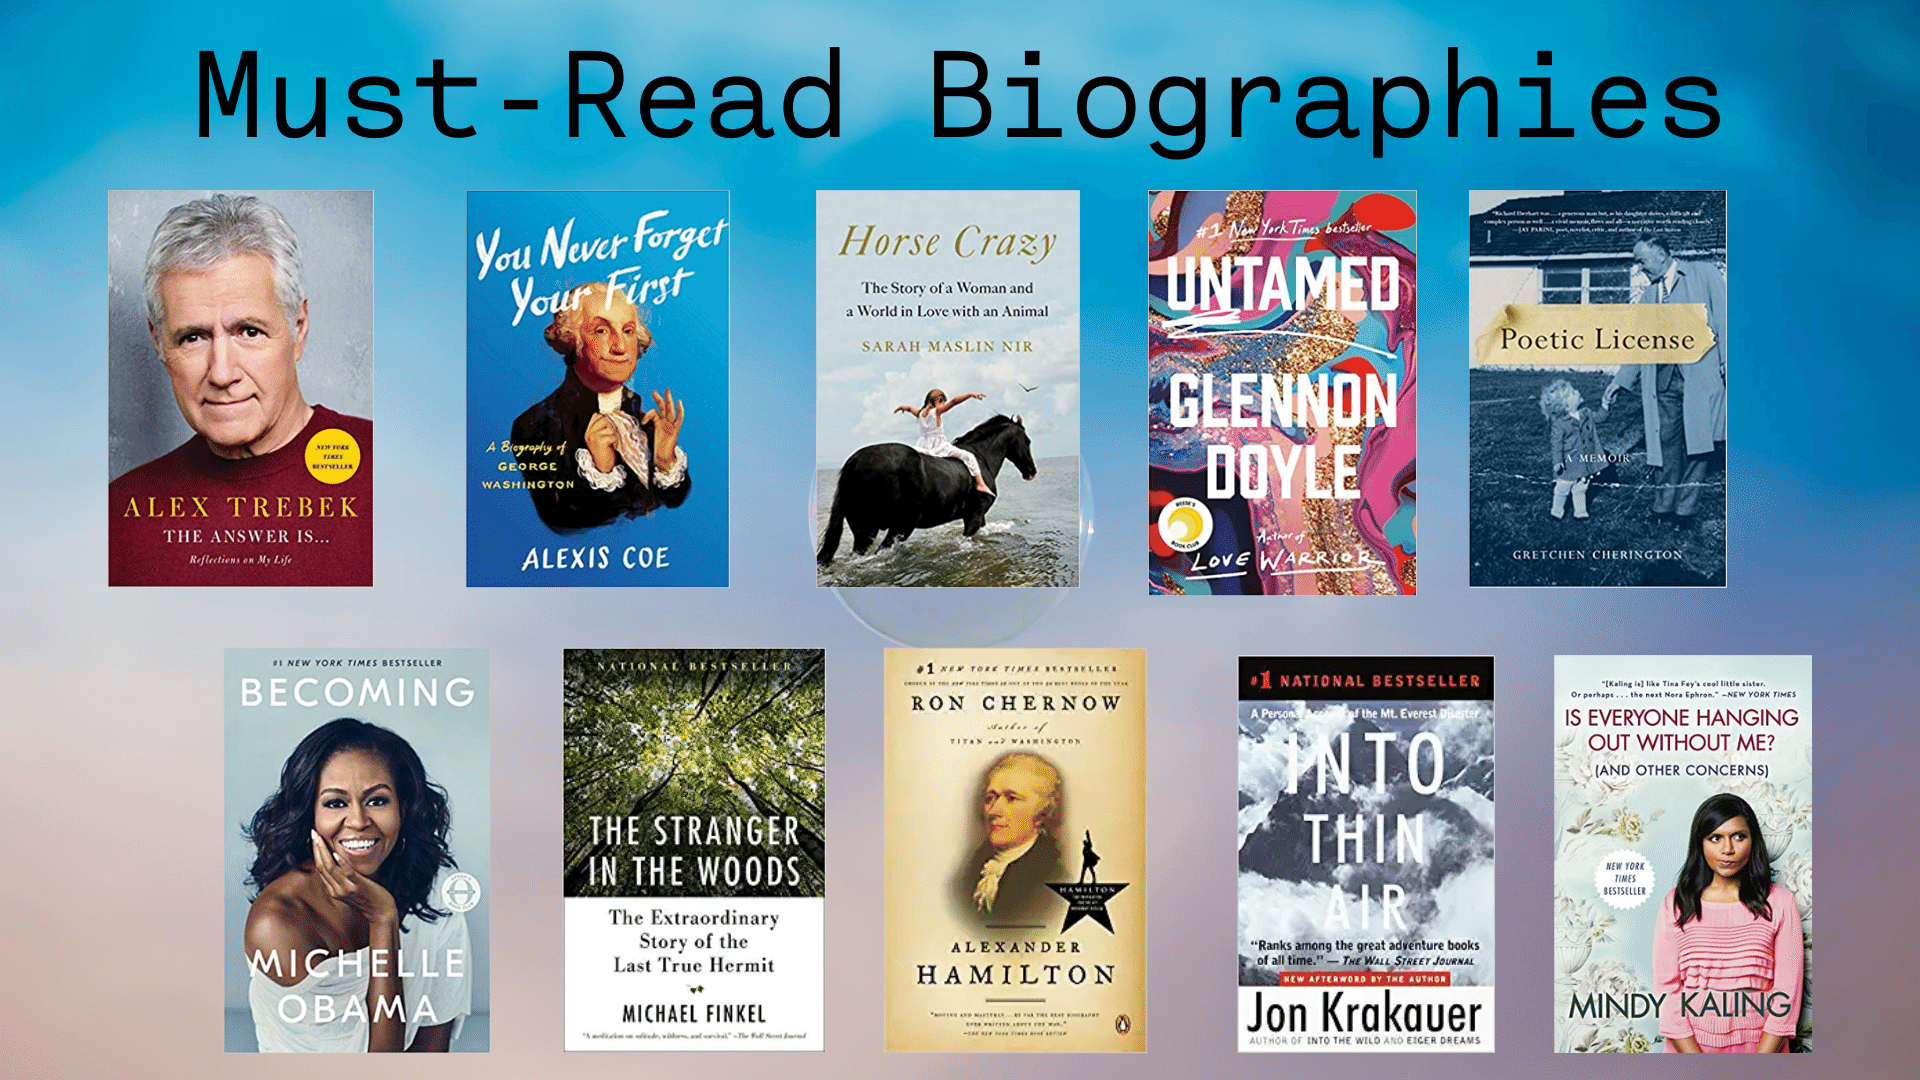 must-read biography book list